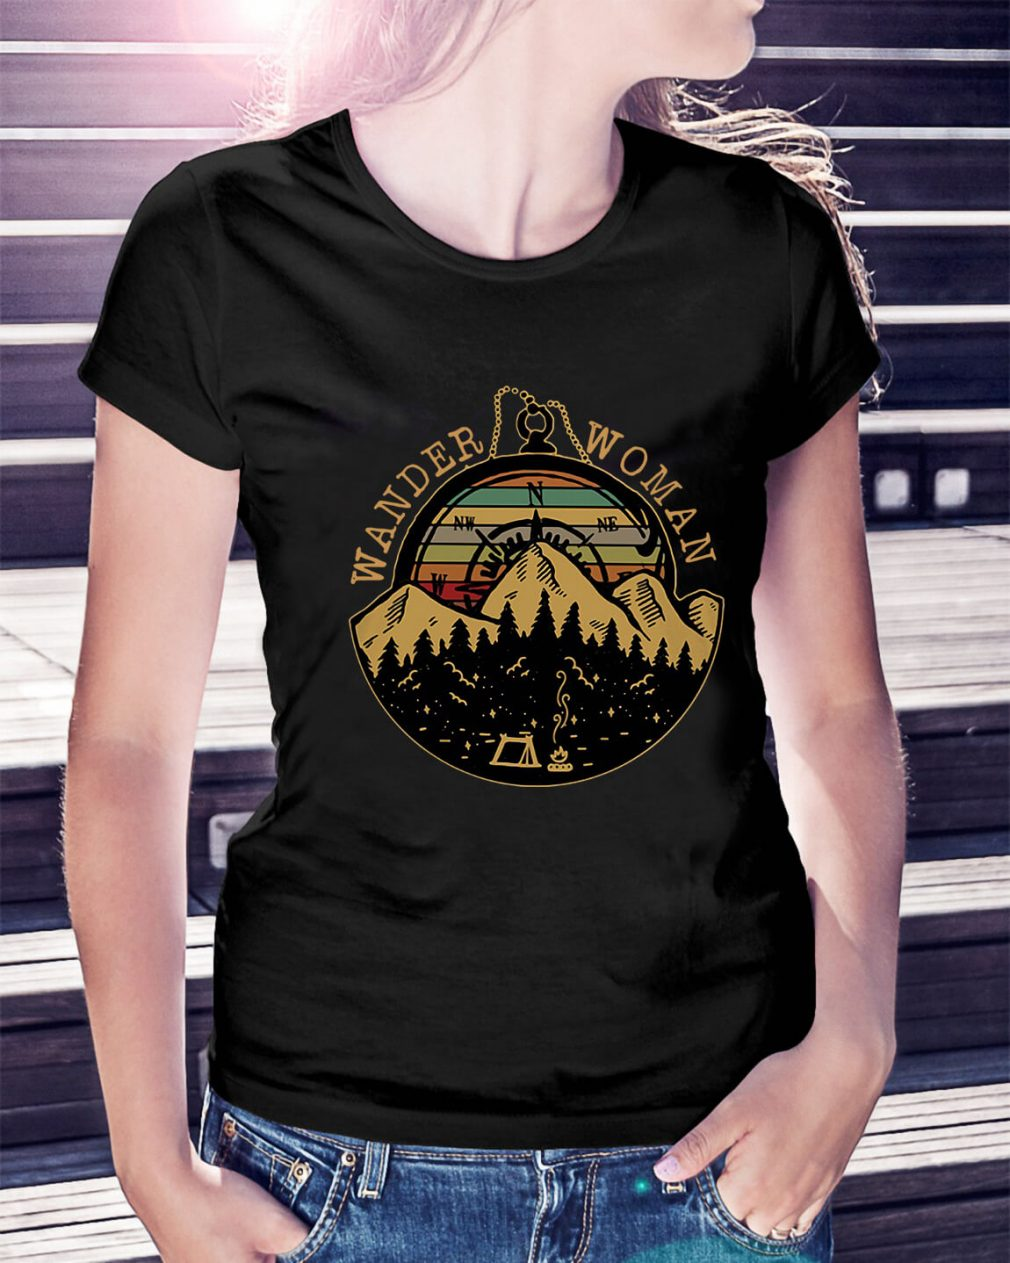 Wander woman sunset retro Ladies Tee